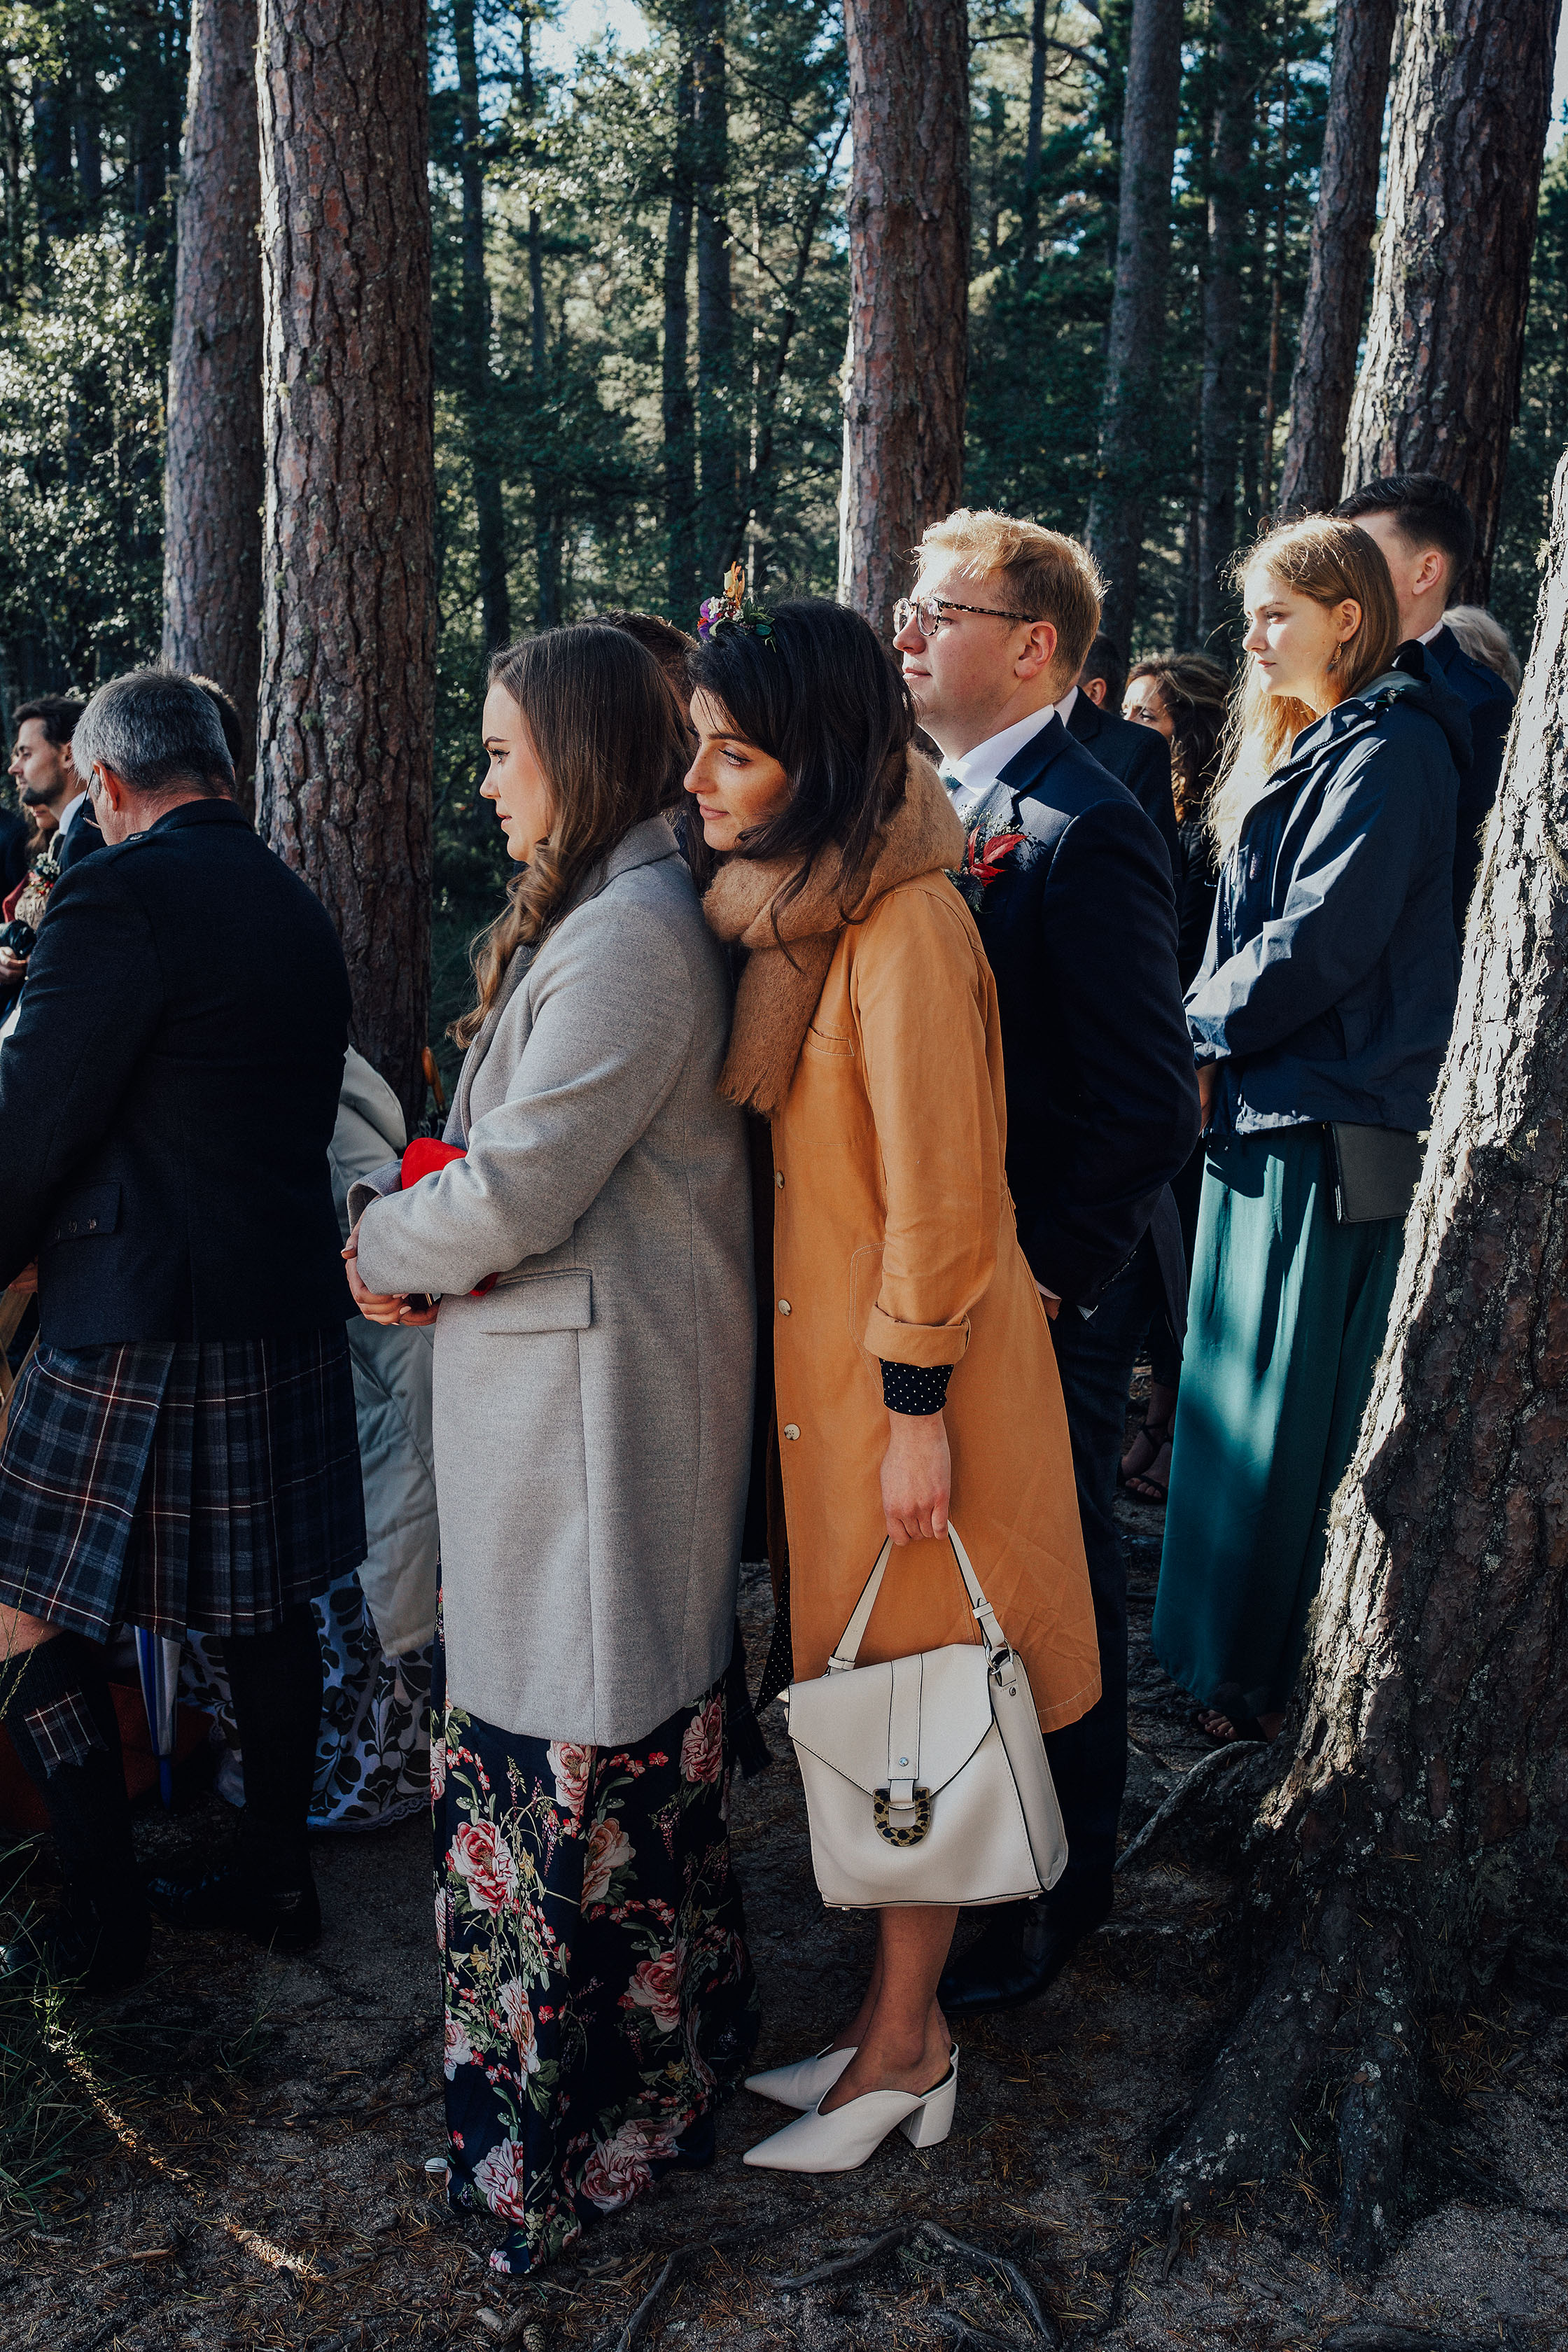 PJ_PHILLIPS_PHOTOGRAPHY_2018_SCOTLAND_WEDDING_PHOTOOGRAPHER_128.jpg